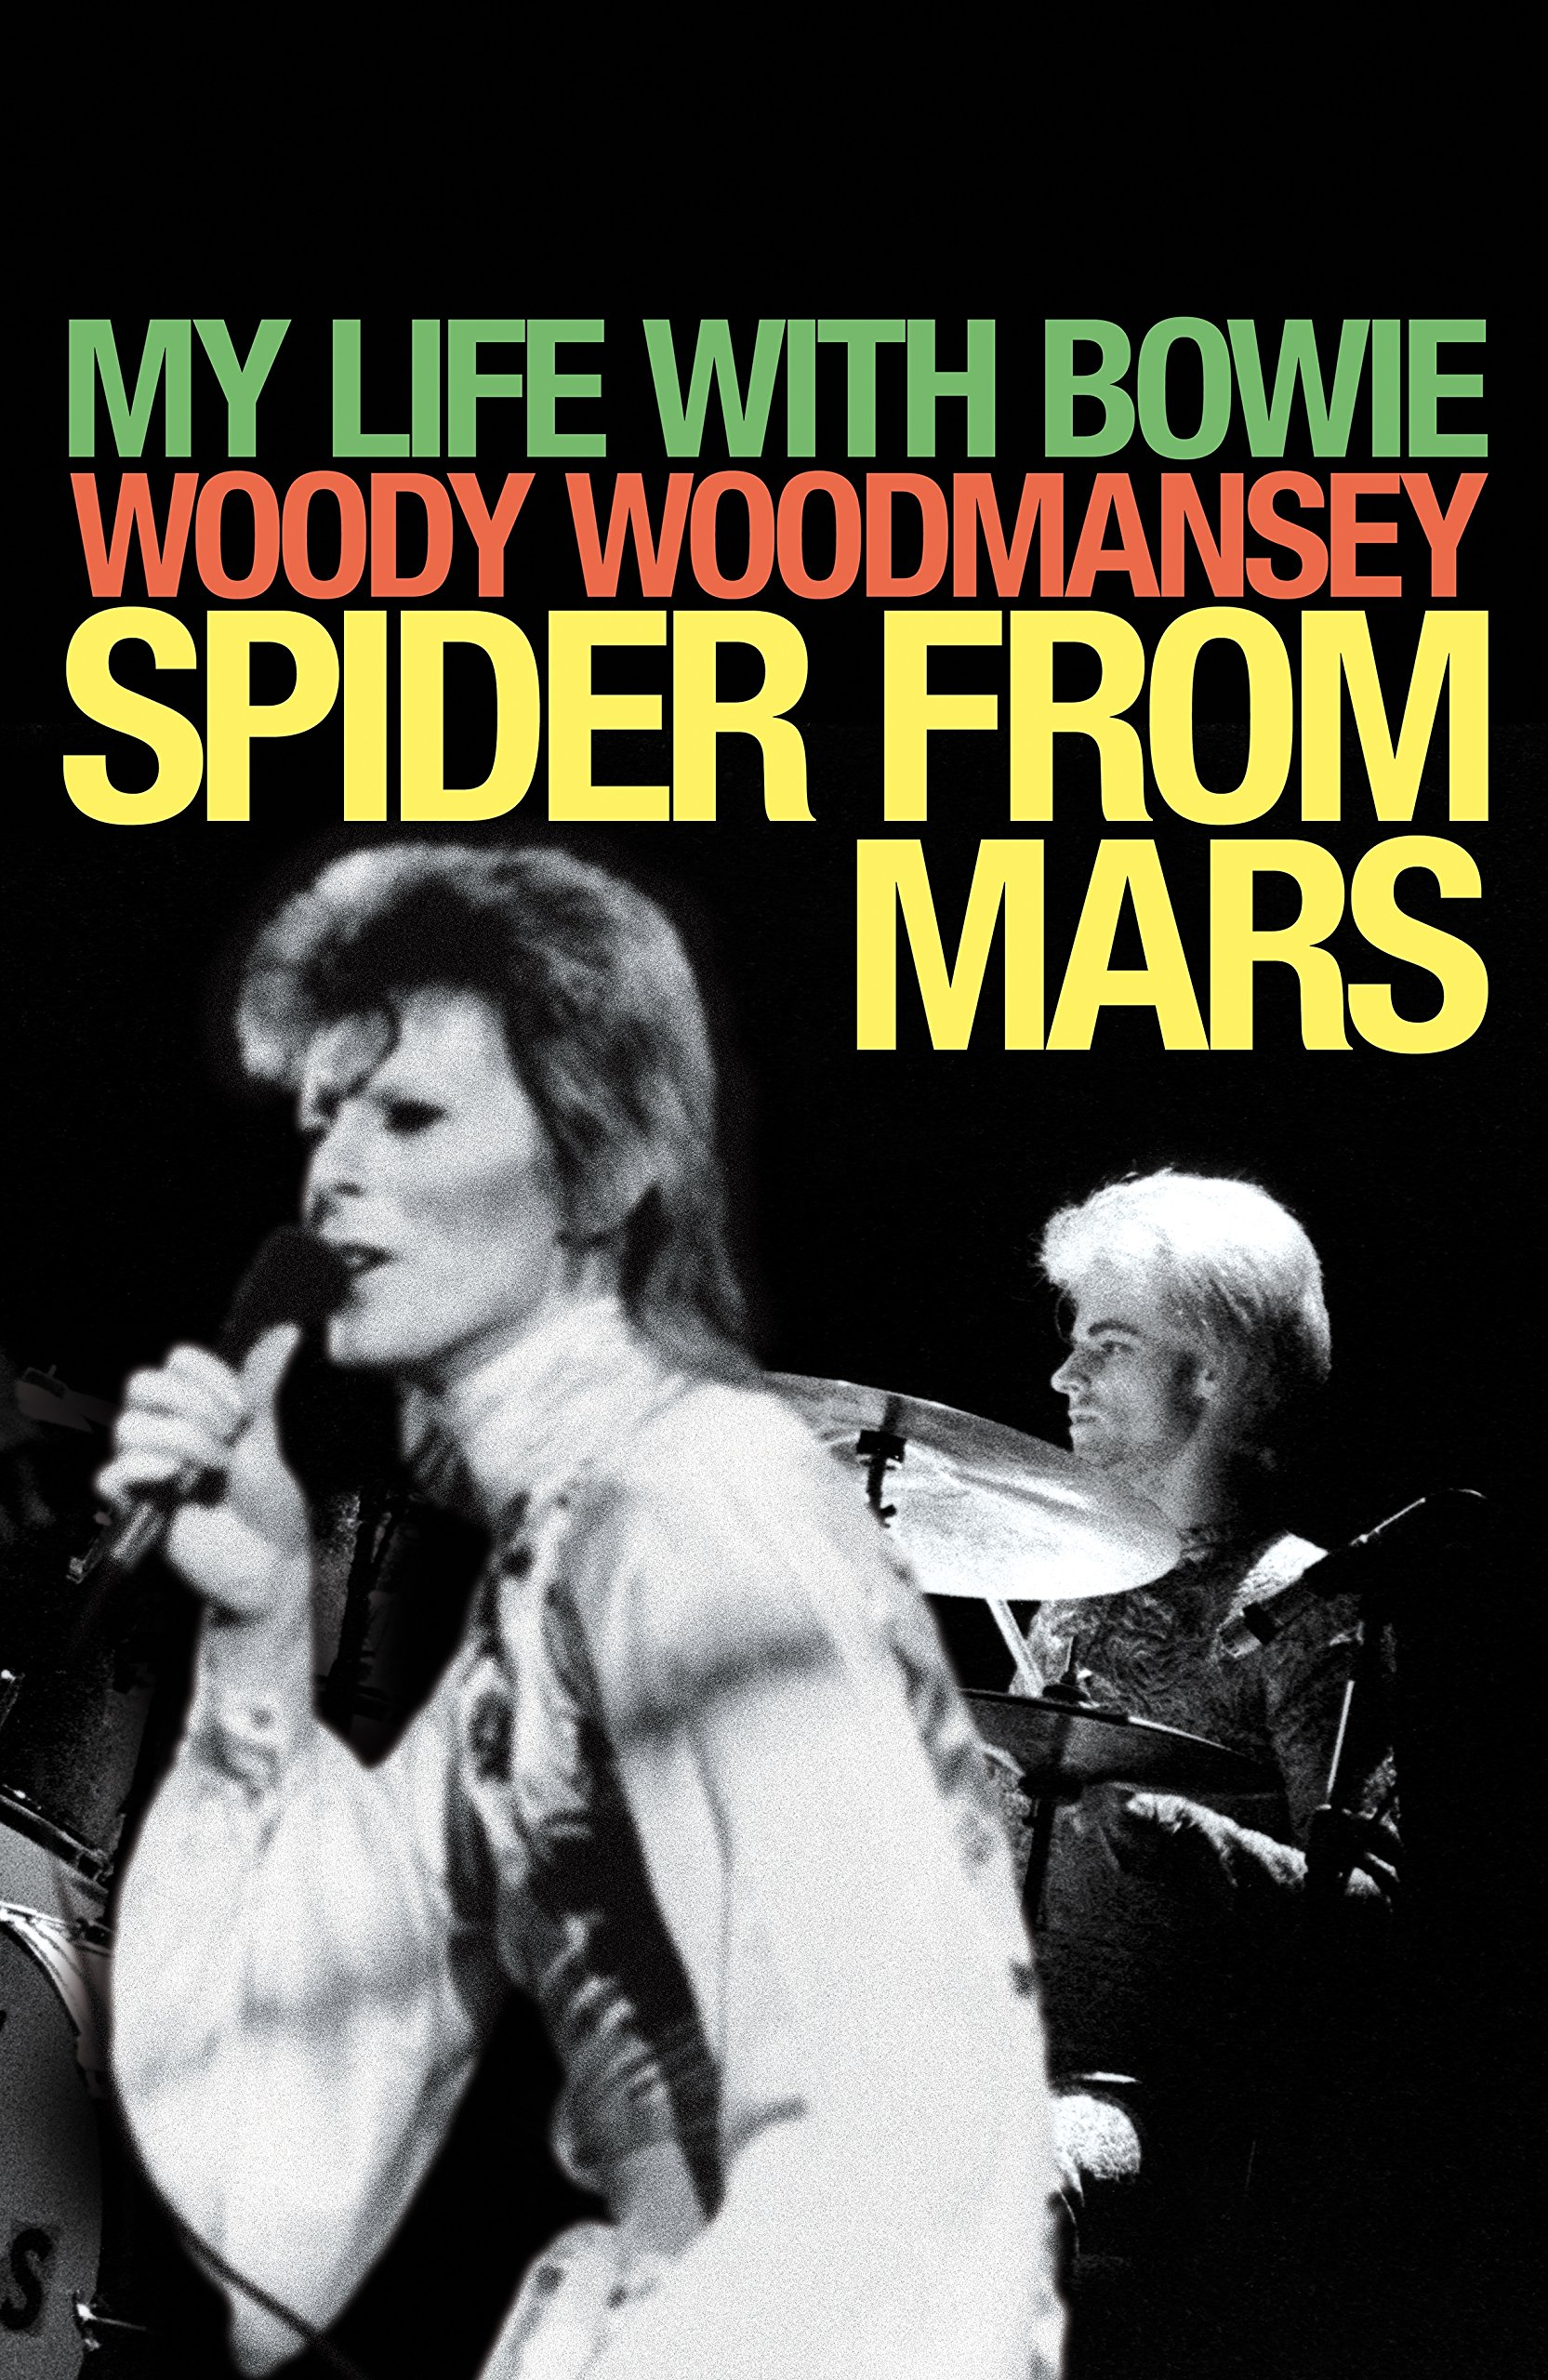 Spider from Mars: My Life with Bowie: Amazon co uk: Woody Woodmansey